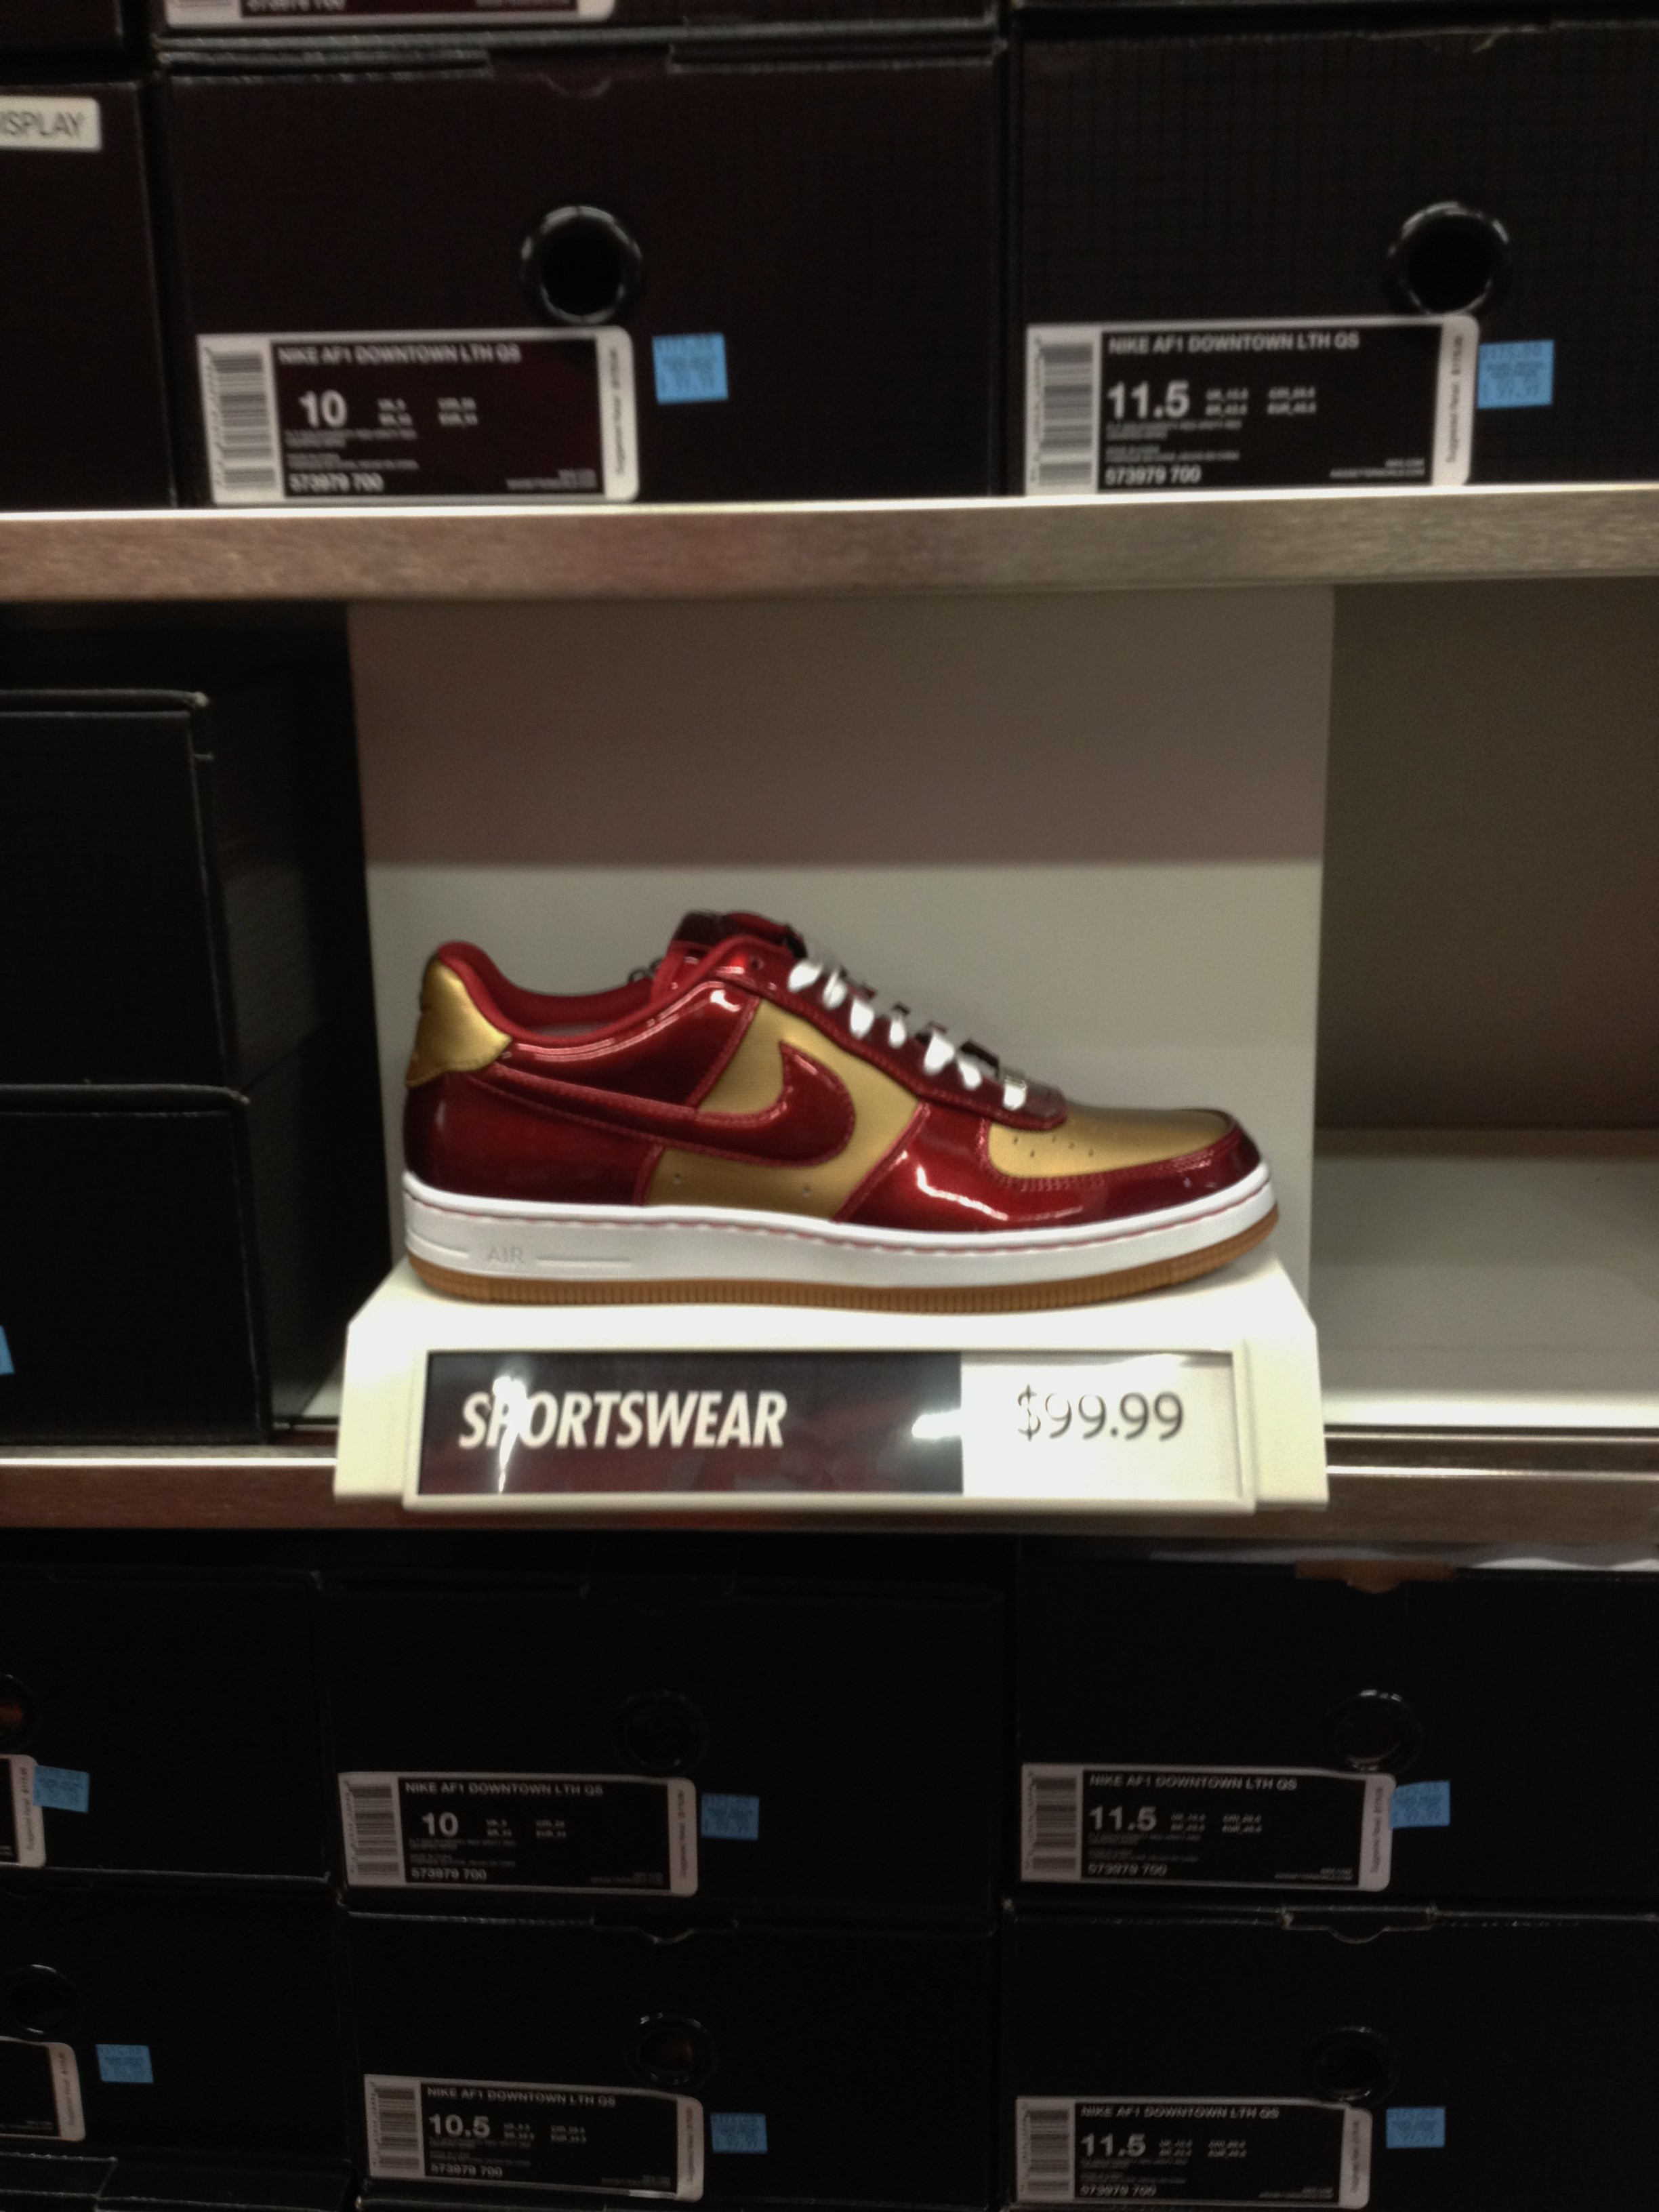 Nike Air Force 1 Downtown LTH QS 'Iron Man' WearTesters